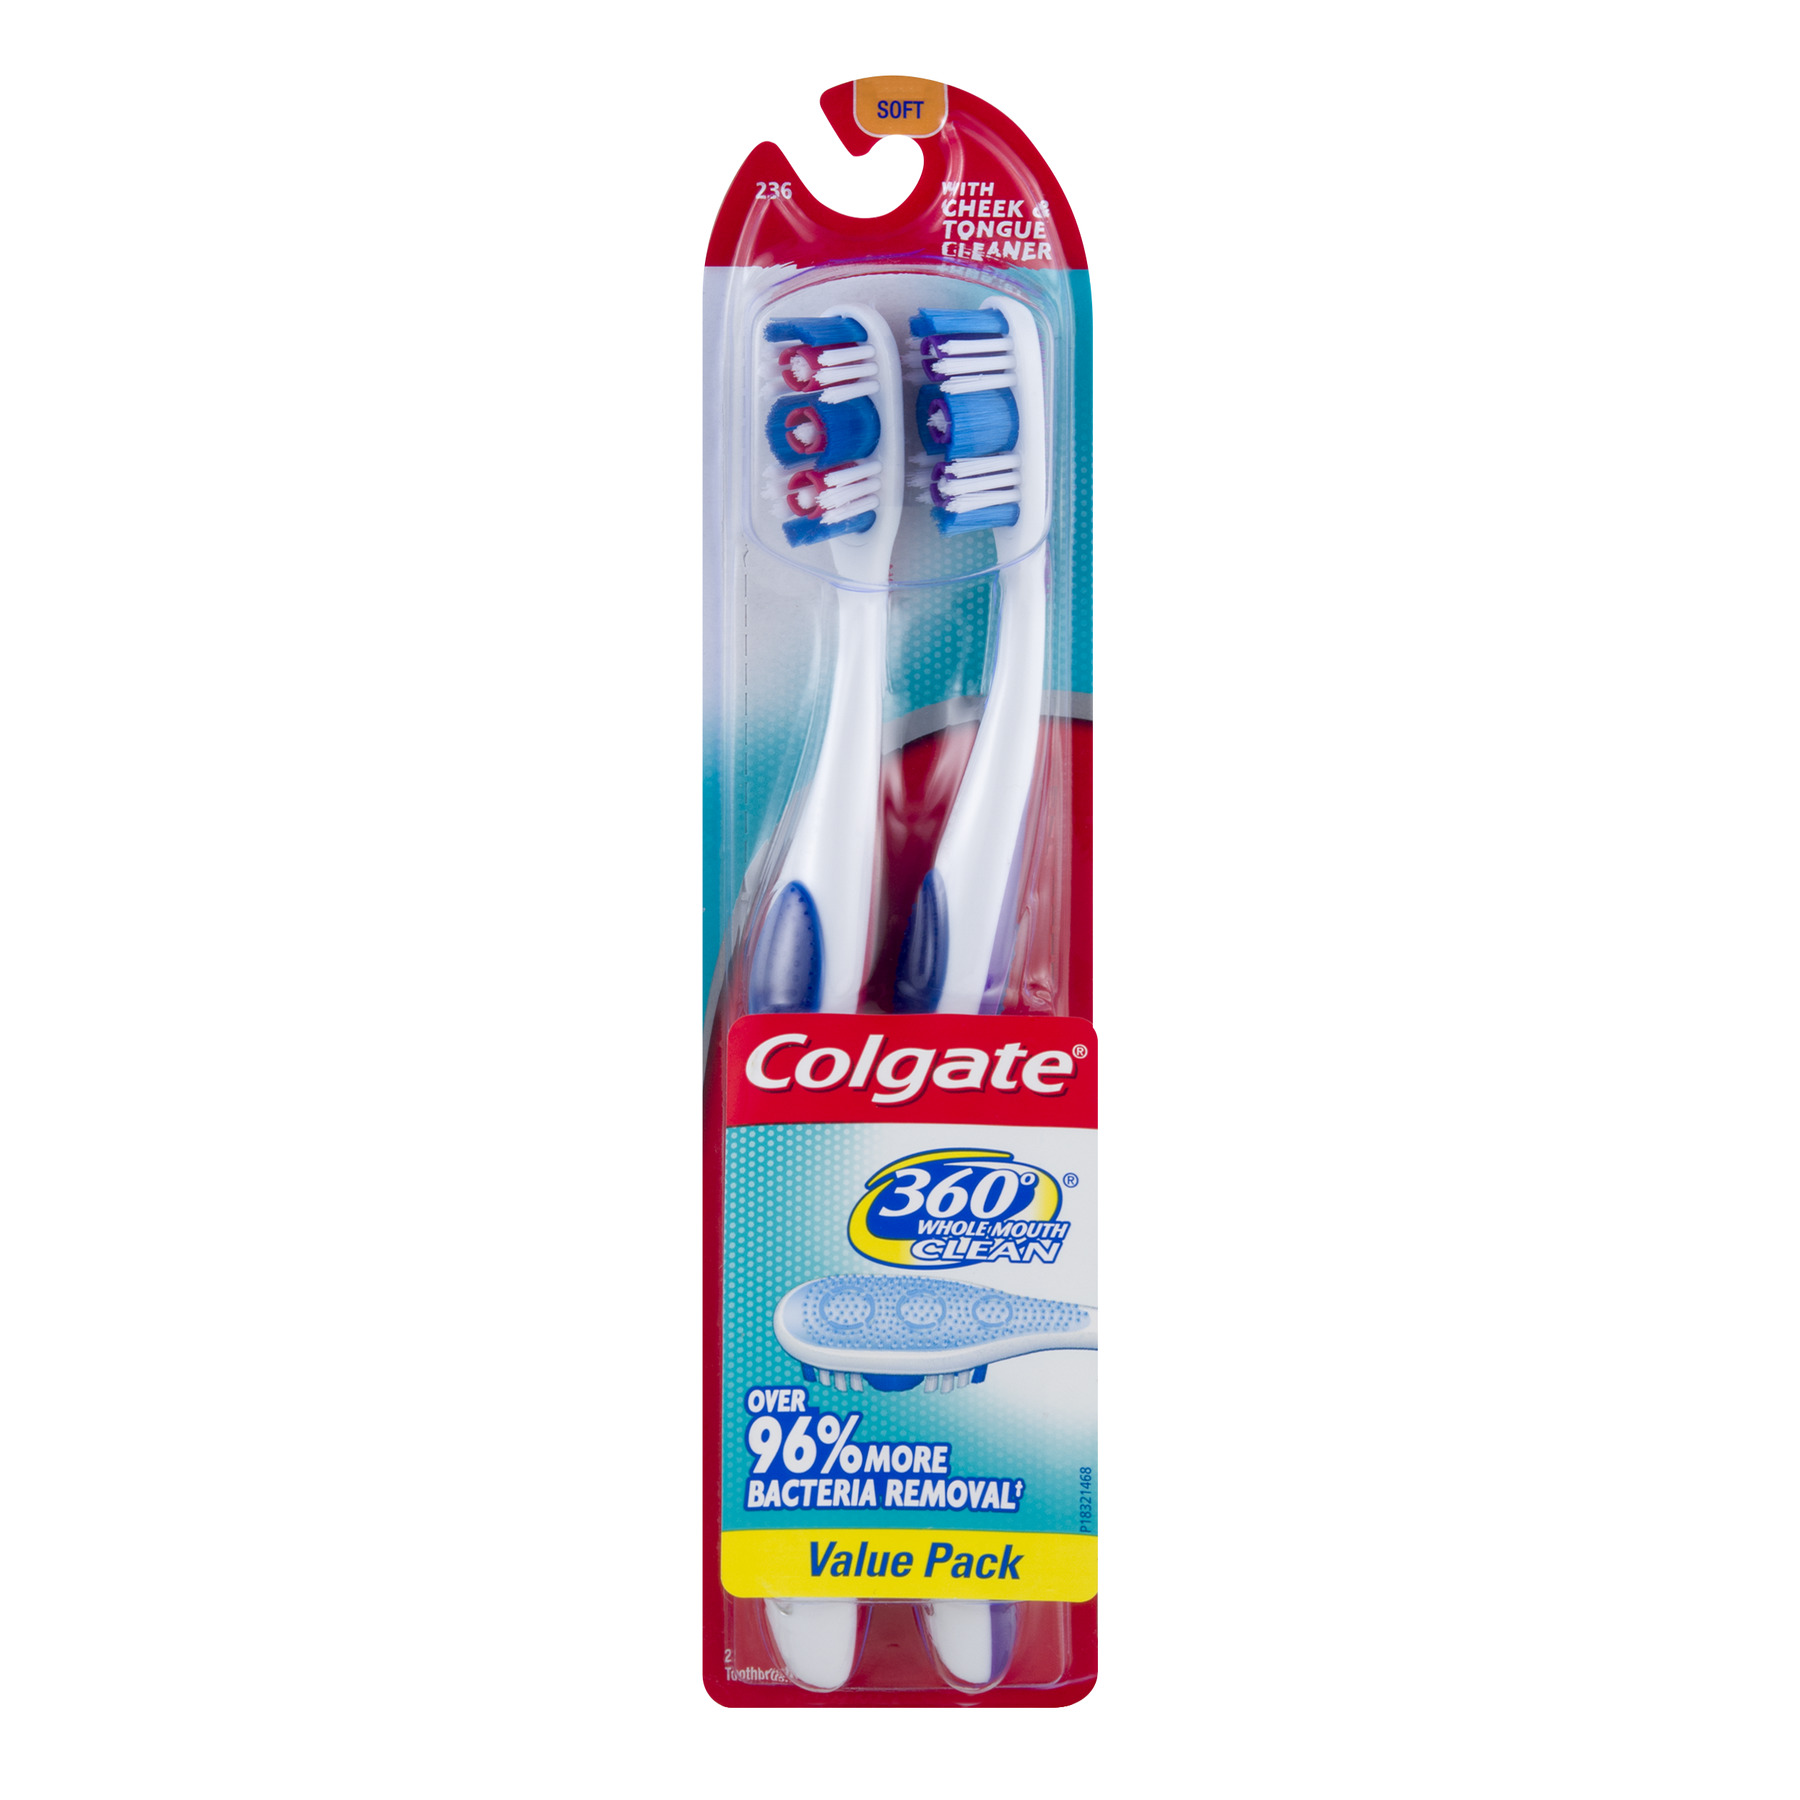 (Pack of 2) Colgate 360 Degree Whole Mouth Clean Manual Toothbrushes, Soft Bristle